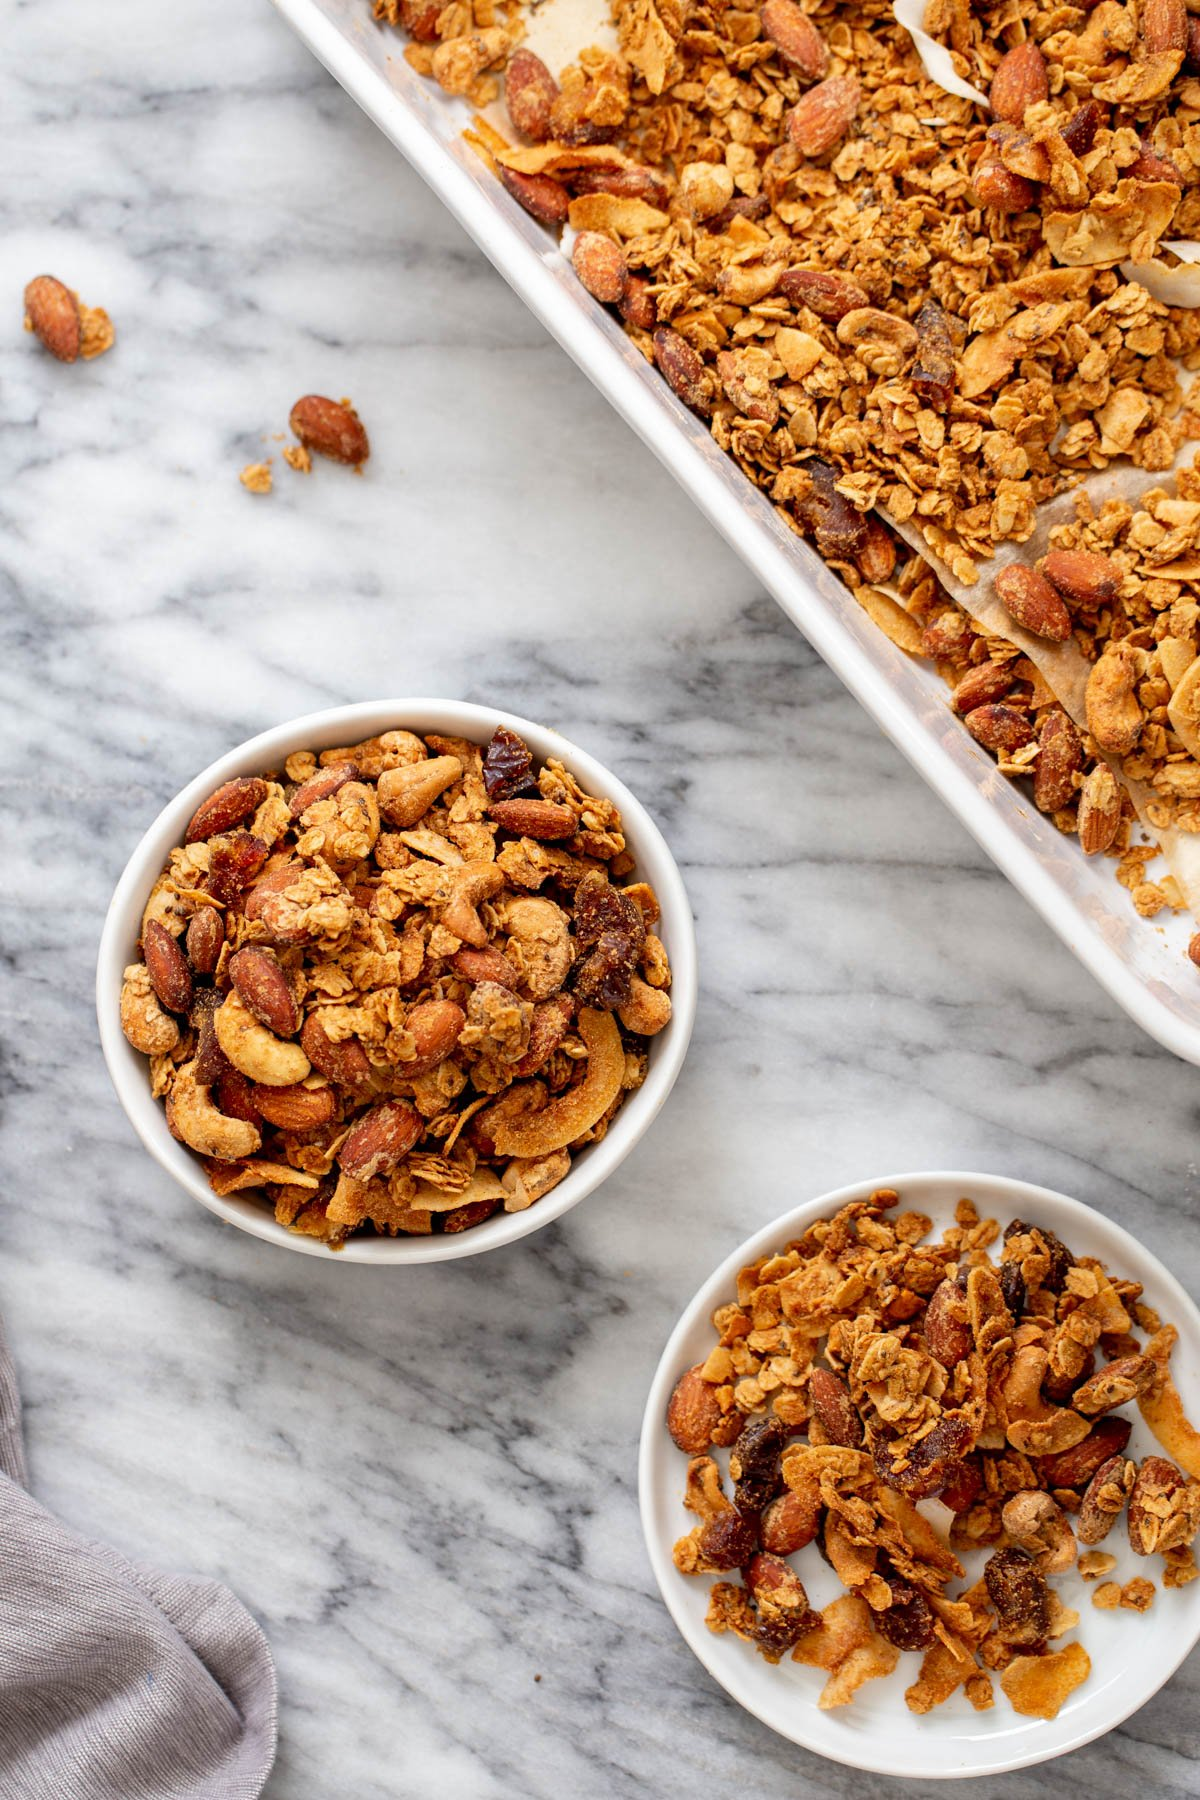 two small bowls of homemade baked vegan almond coconut granola next to a baking sheet with granola